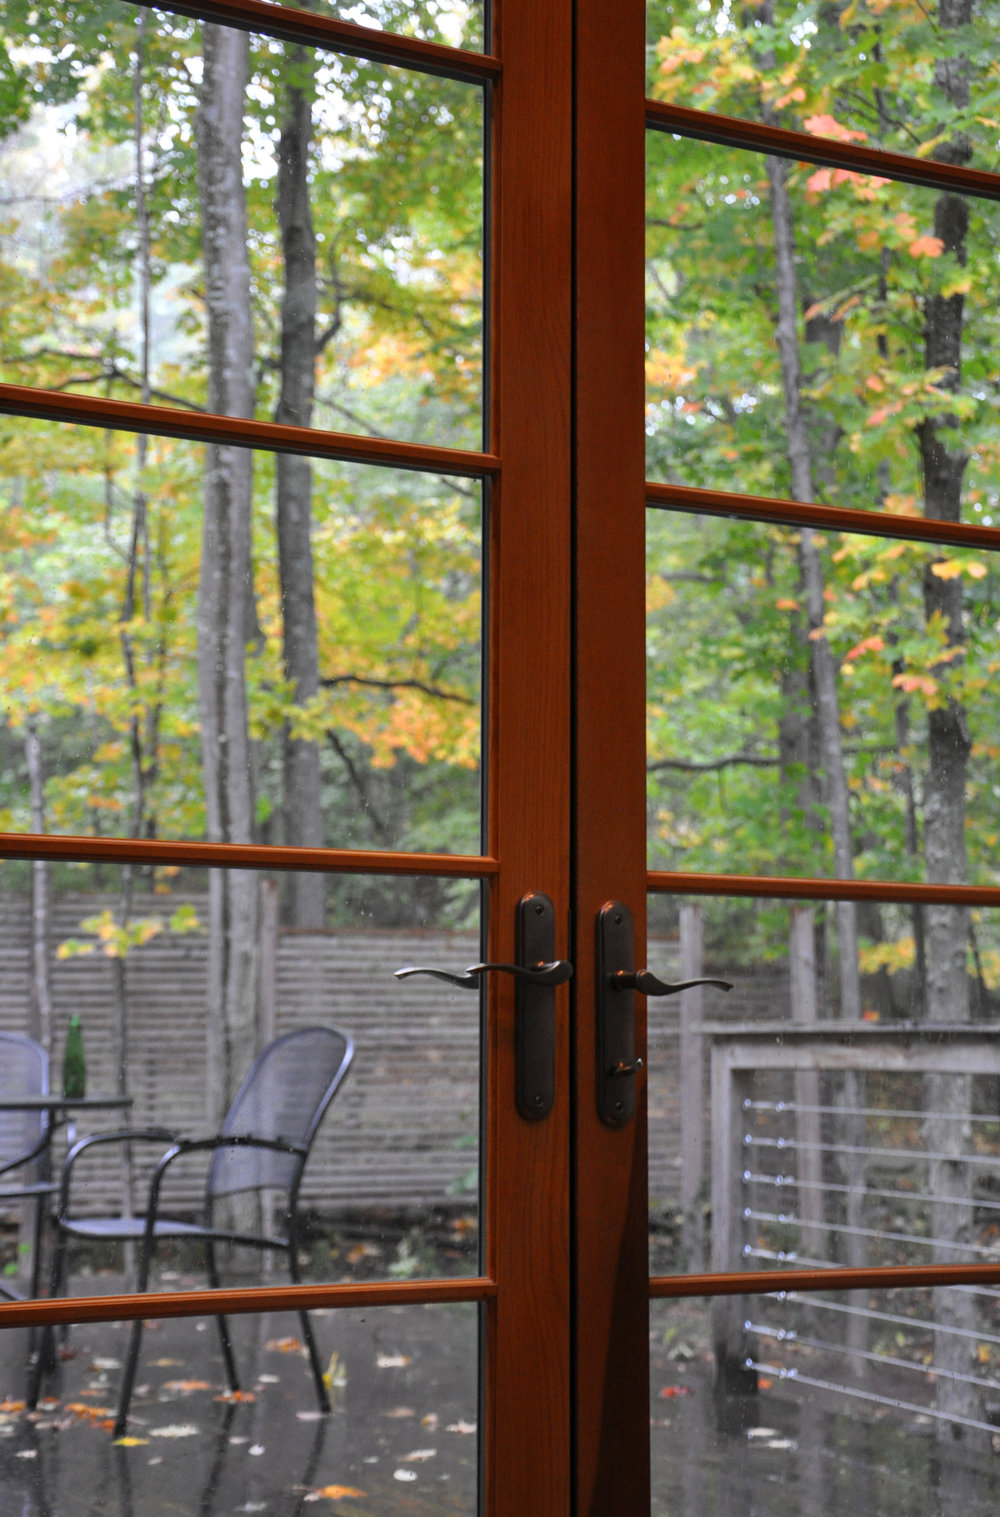 view through wooden french doors to pack porch deck, autumn leaves, outdoor seating